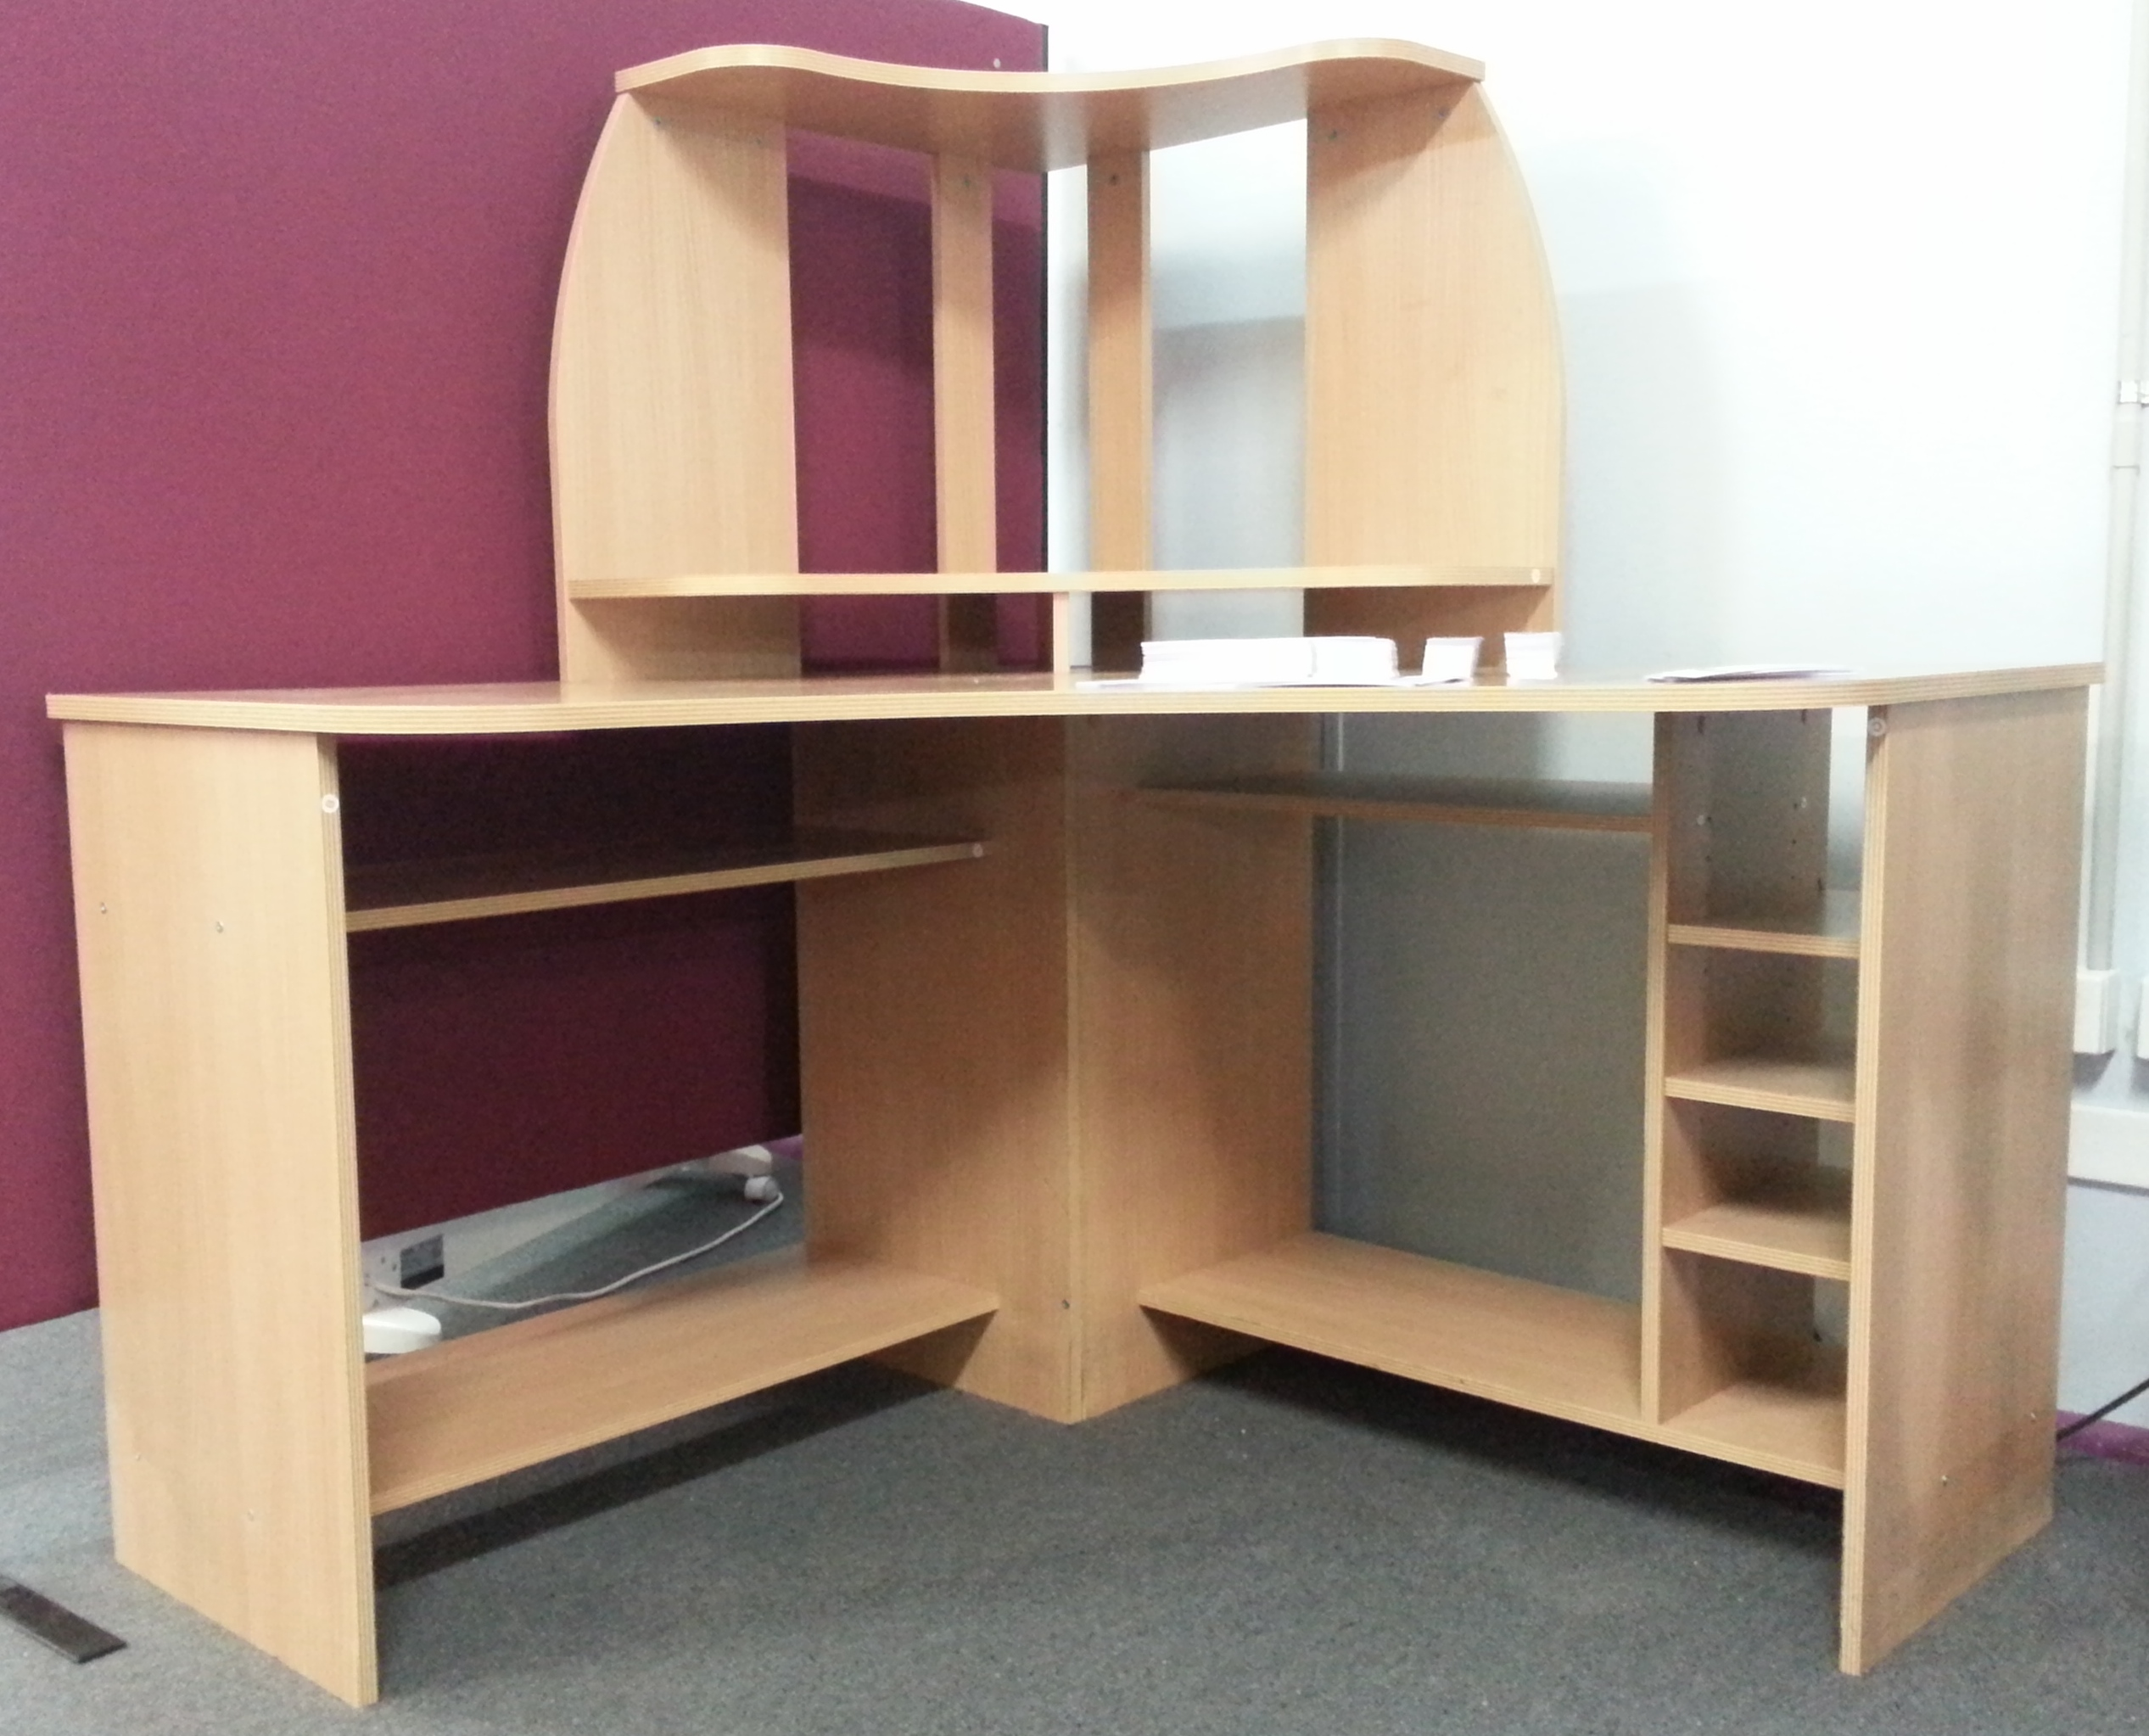 desk shelf cheap the college cube dorm desk bookshelf. Black Bedroom Furniture Sets. Home Design Ideas